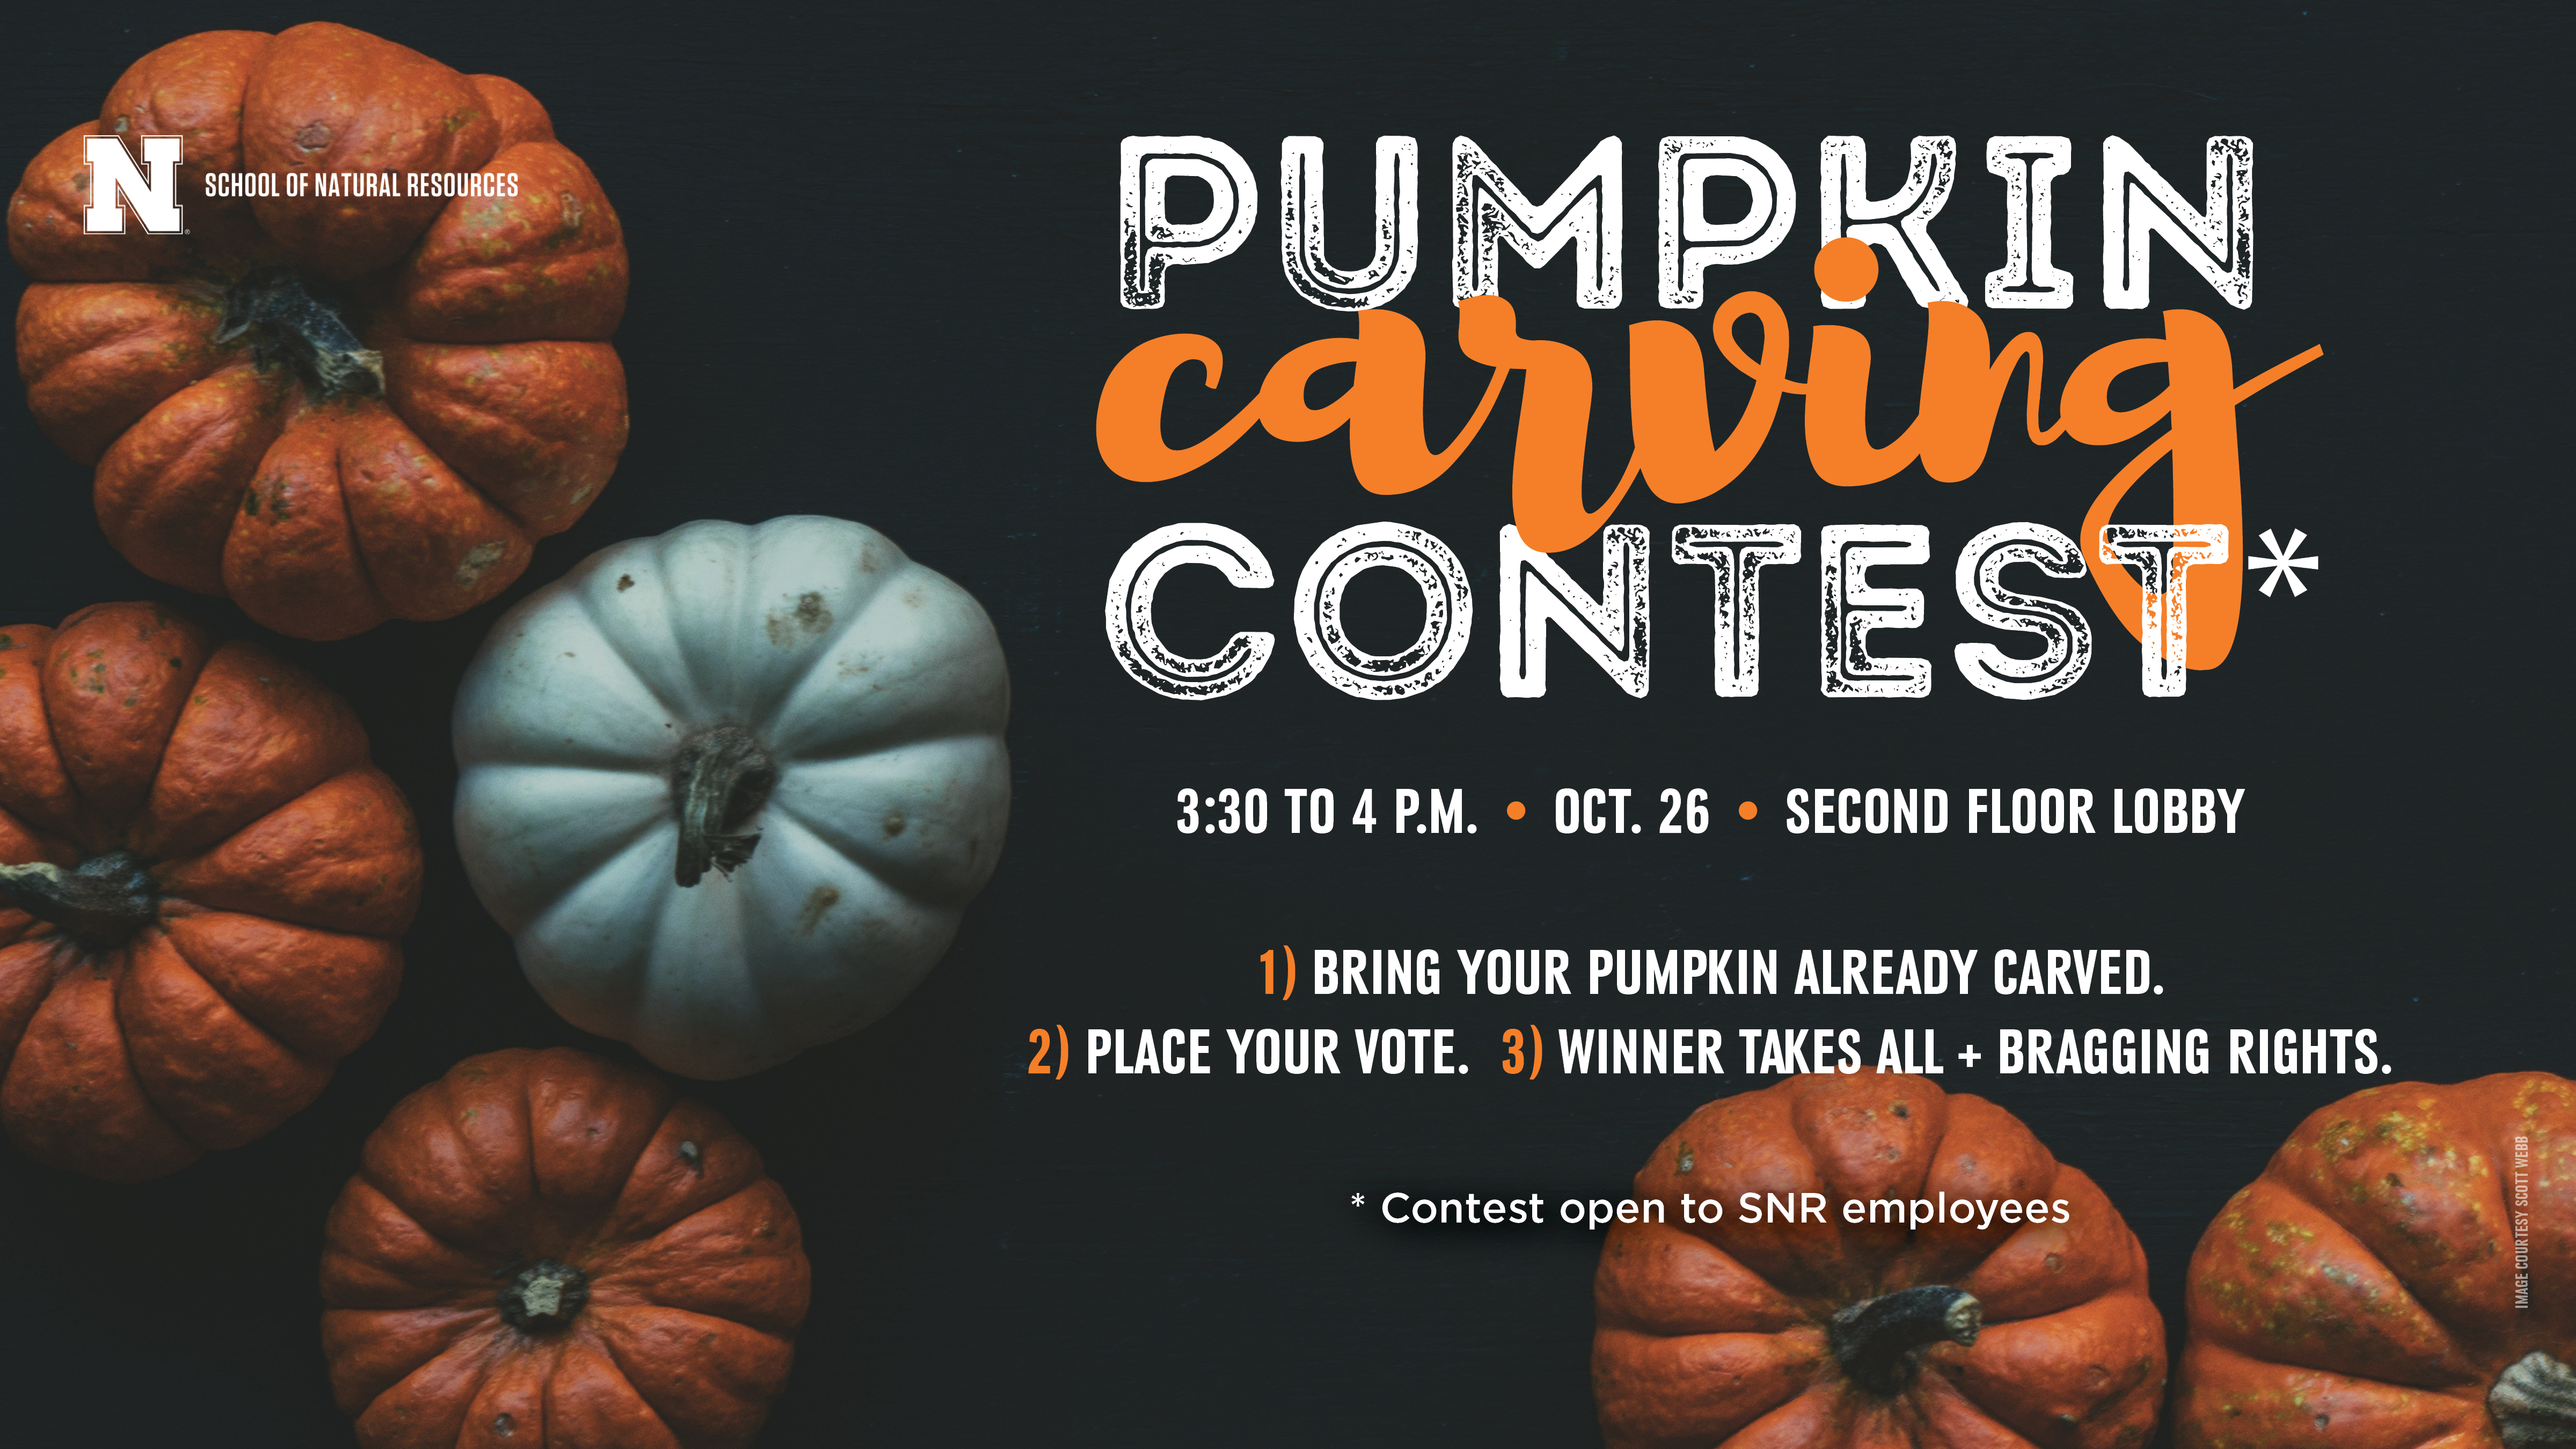 SNR pumpkin carving competition is at 3:30 p.m. Friday.